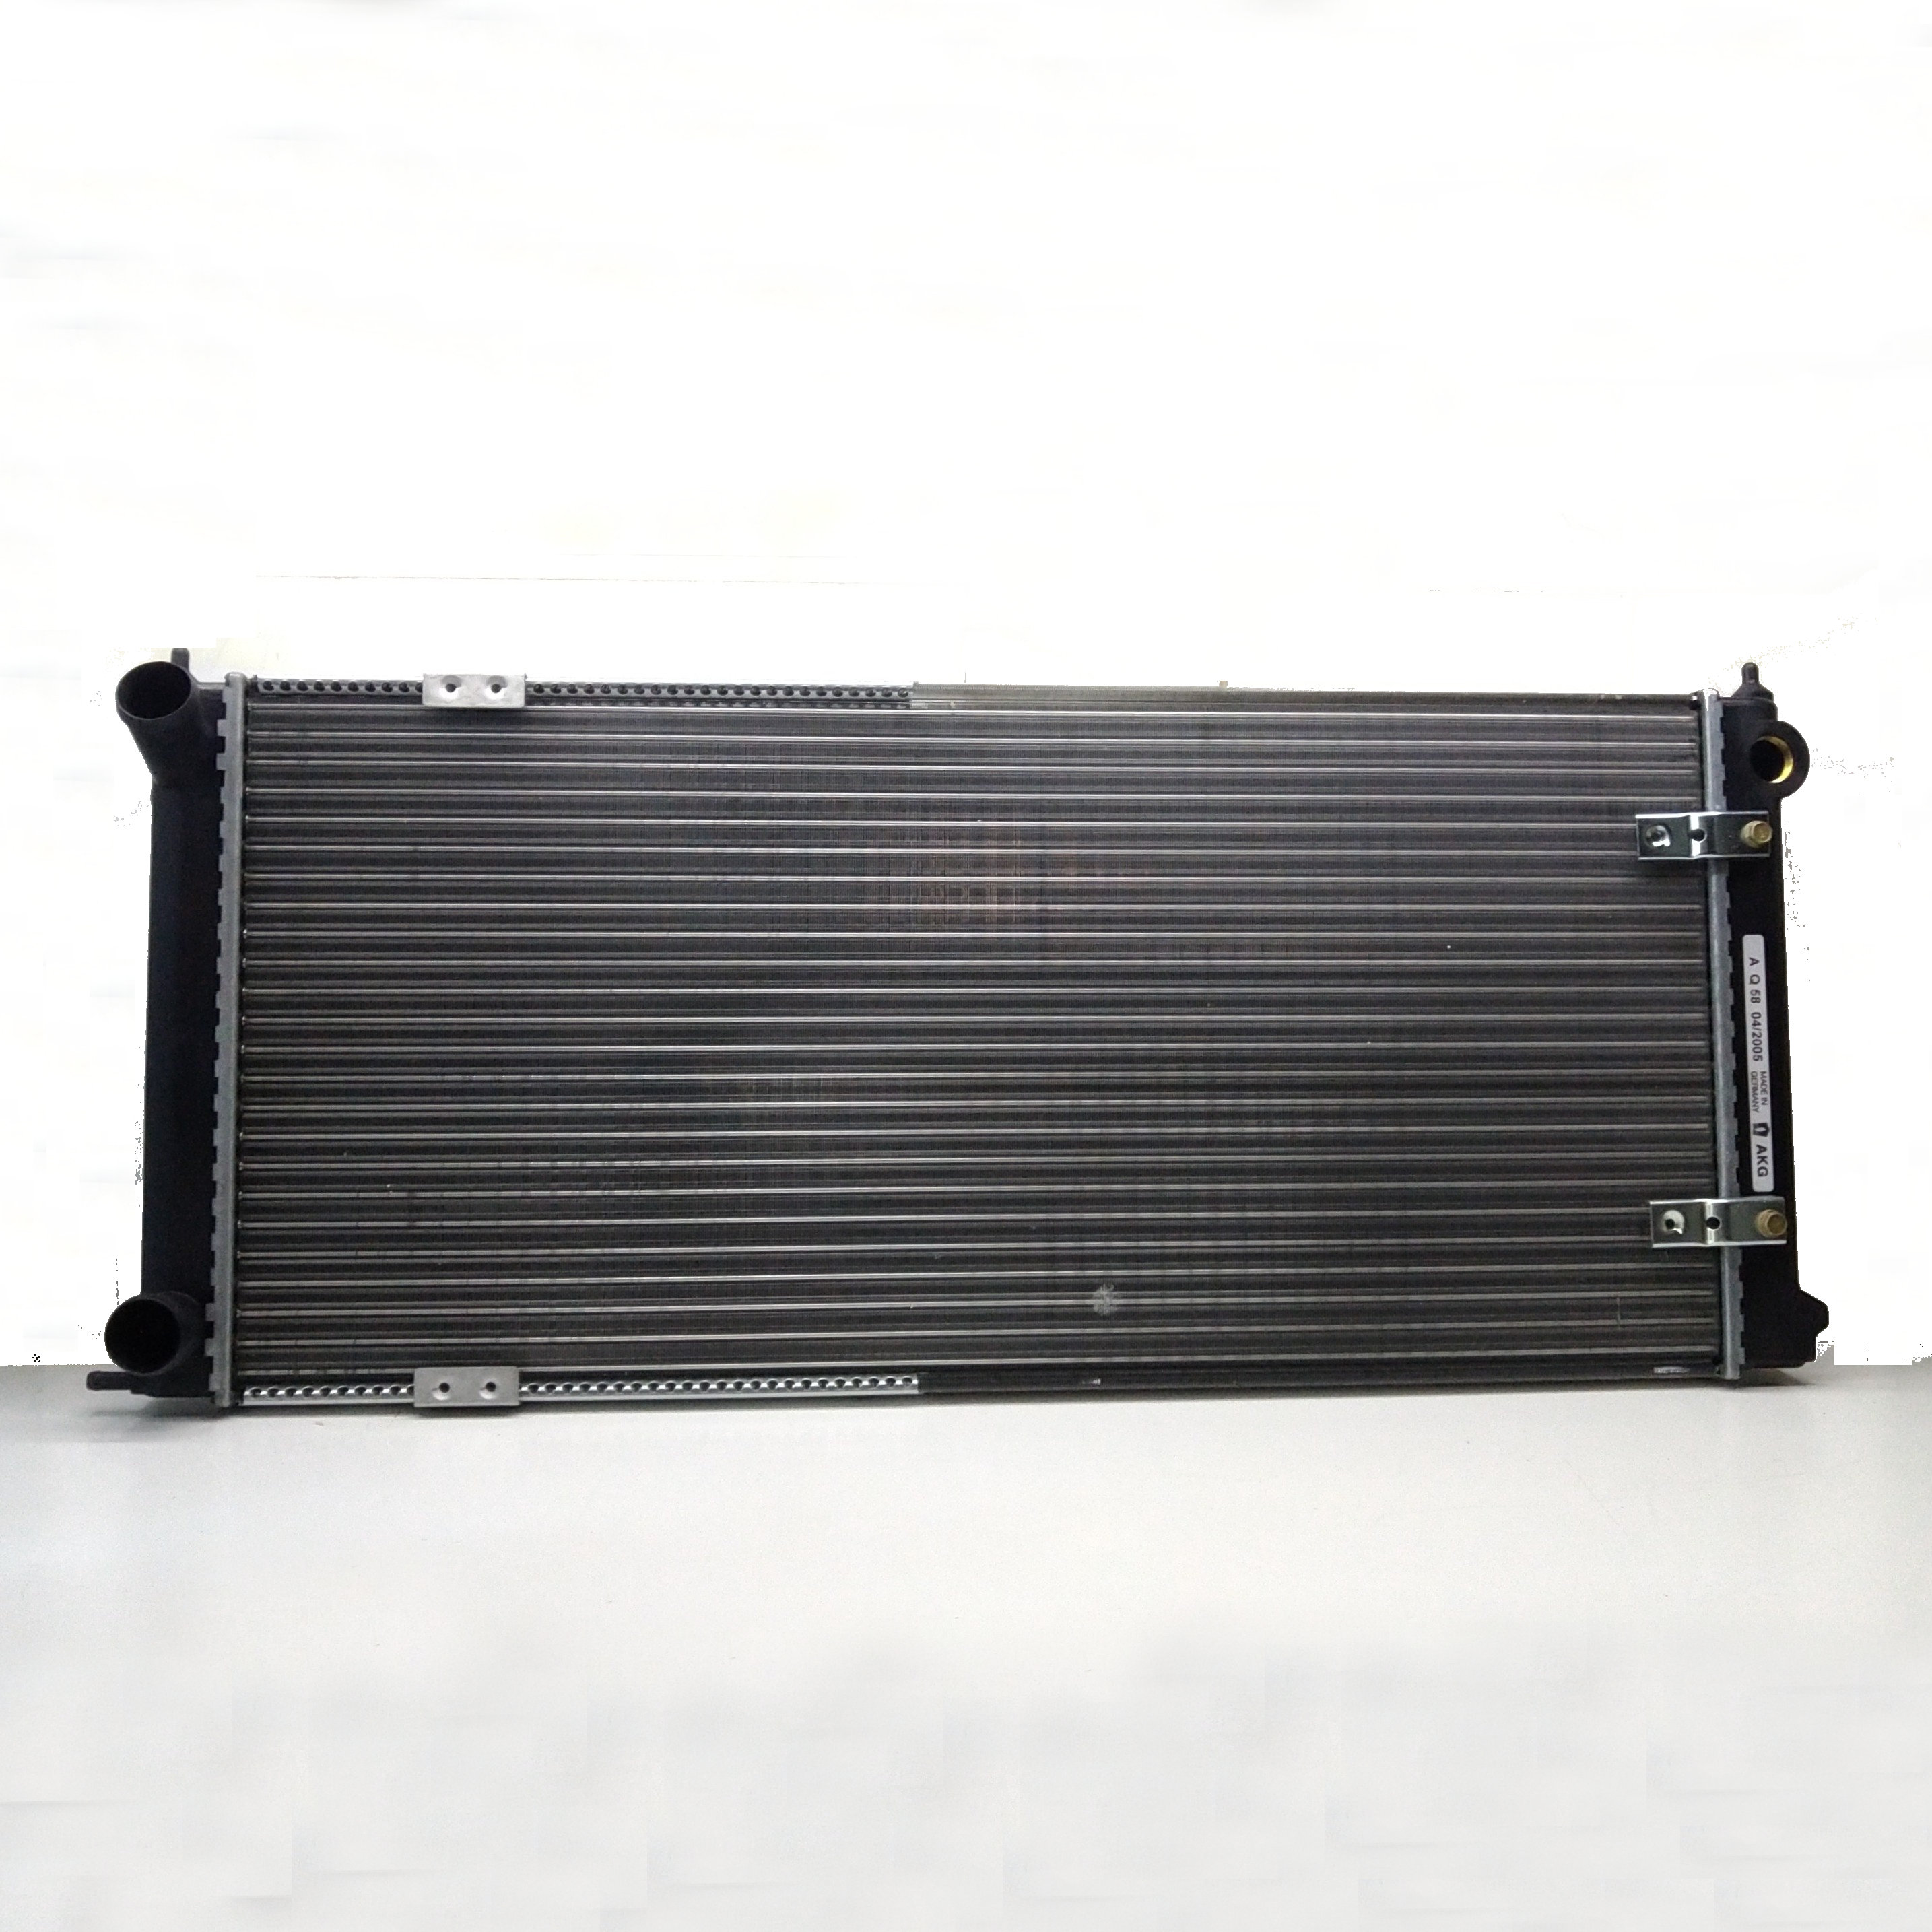 VW GOLF ENGINE COOLING RADIATOR - ORIGINAL SCIROCCO CANC. 191121251C